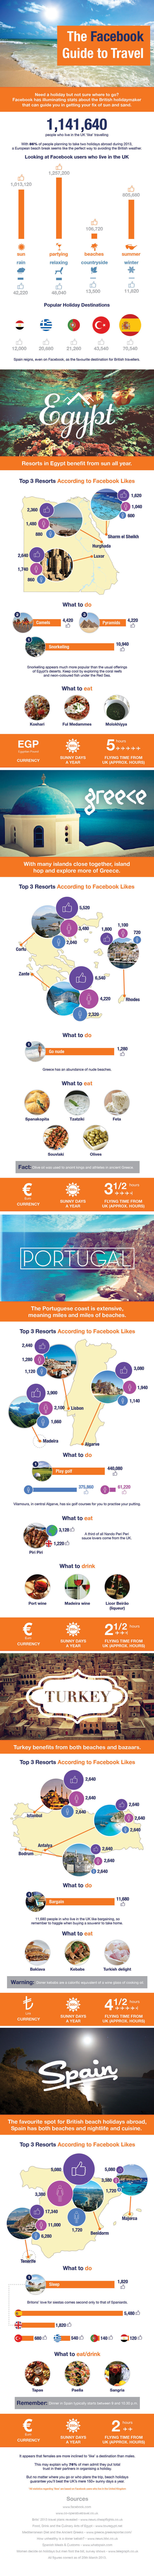 a-facebook-guide-to-travel-infographic_5182a39107773